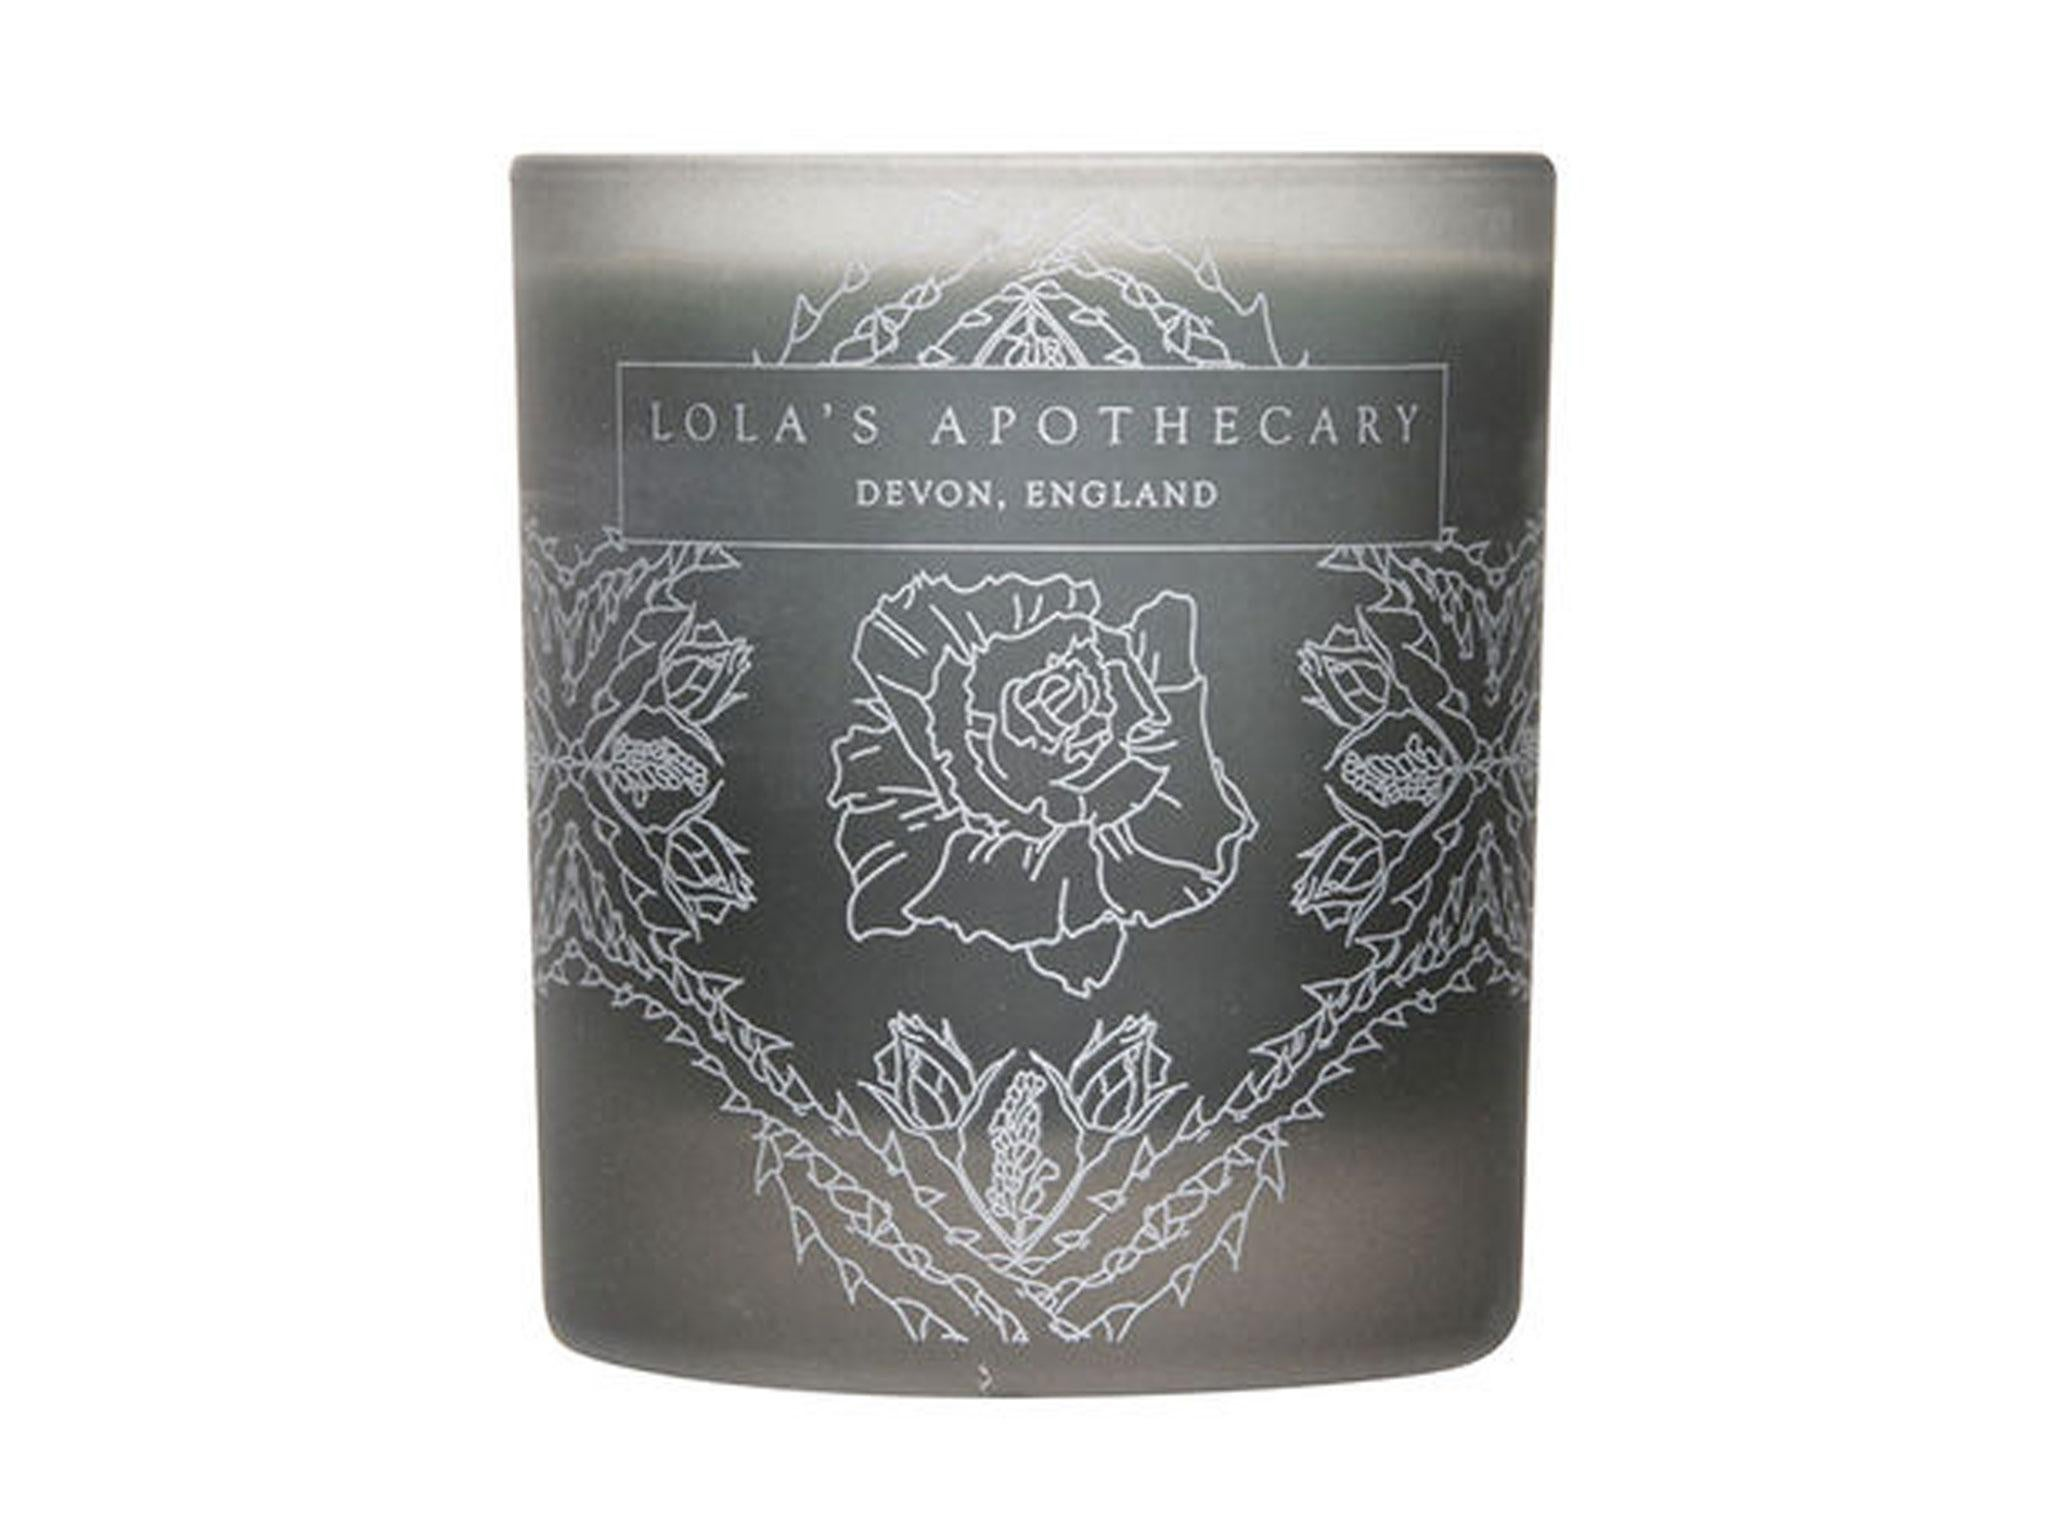 7 Best Non Toxic Candles The Independent Natural Soy Wax Scented Cinnamon Vanilla Lolas Apothecary Sweet Lullaby Fragrant Candle 42 For 220g Fragrance Direct